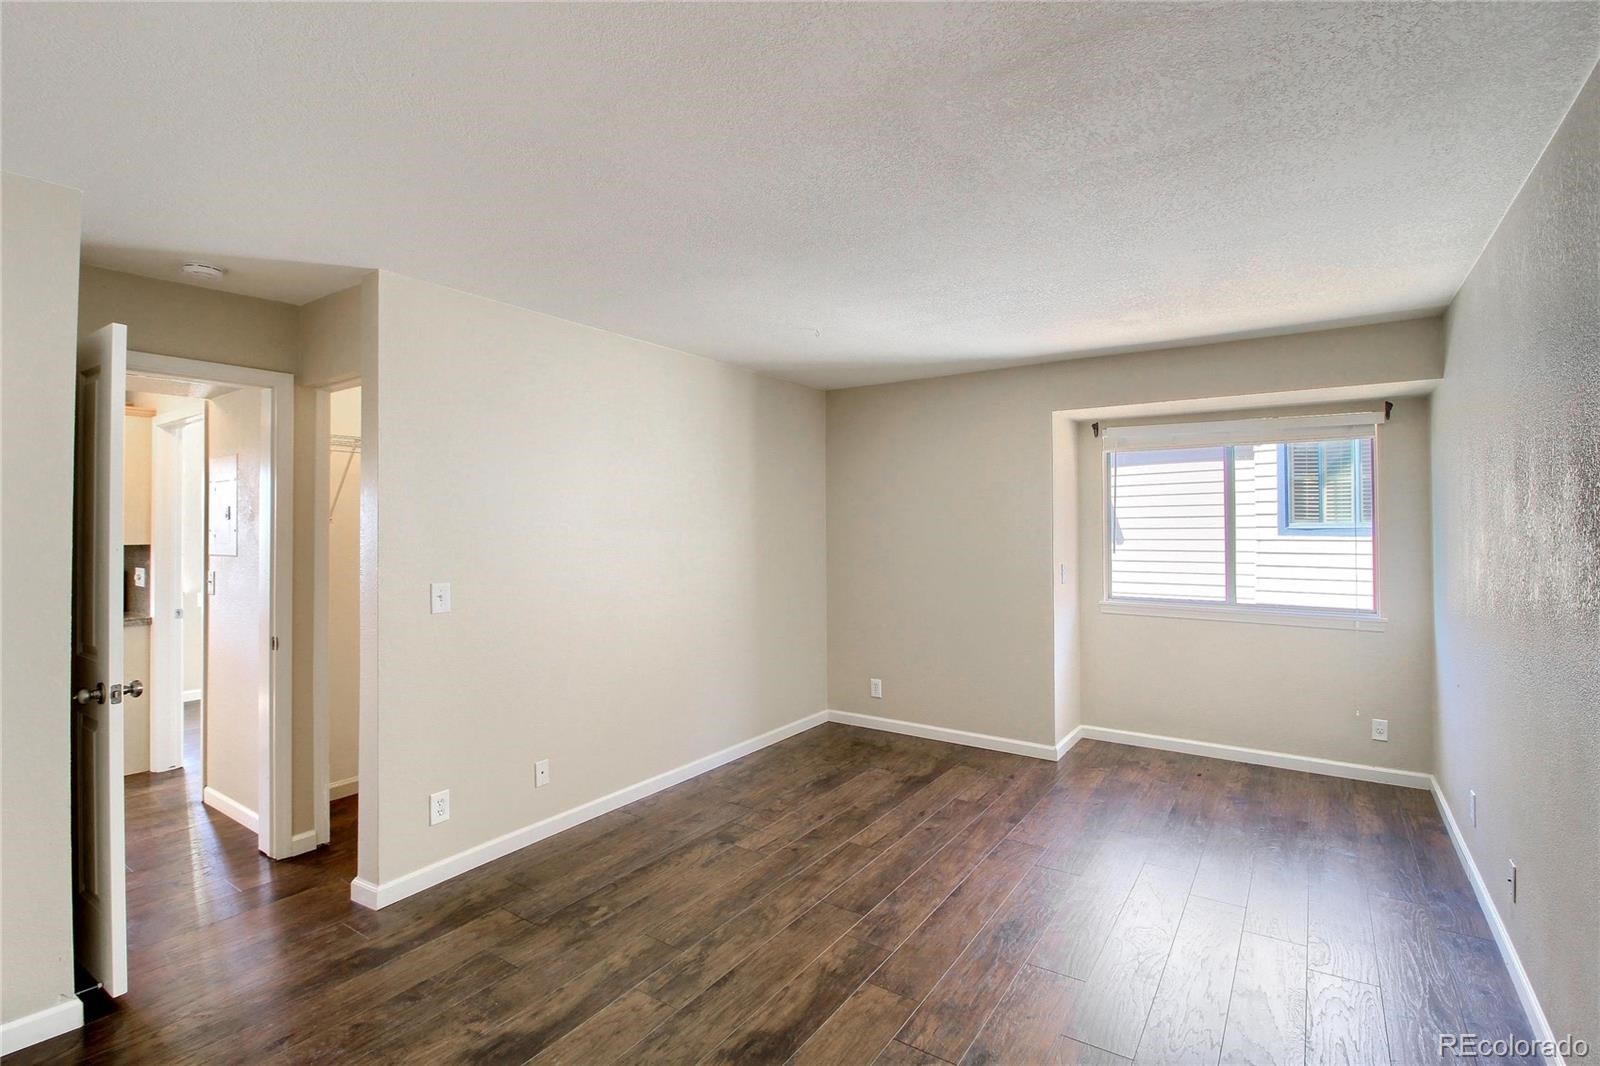 MLS# 5763768 - 18 - 6380 S Boston Street #303, Greenwood Village, CO 80111